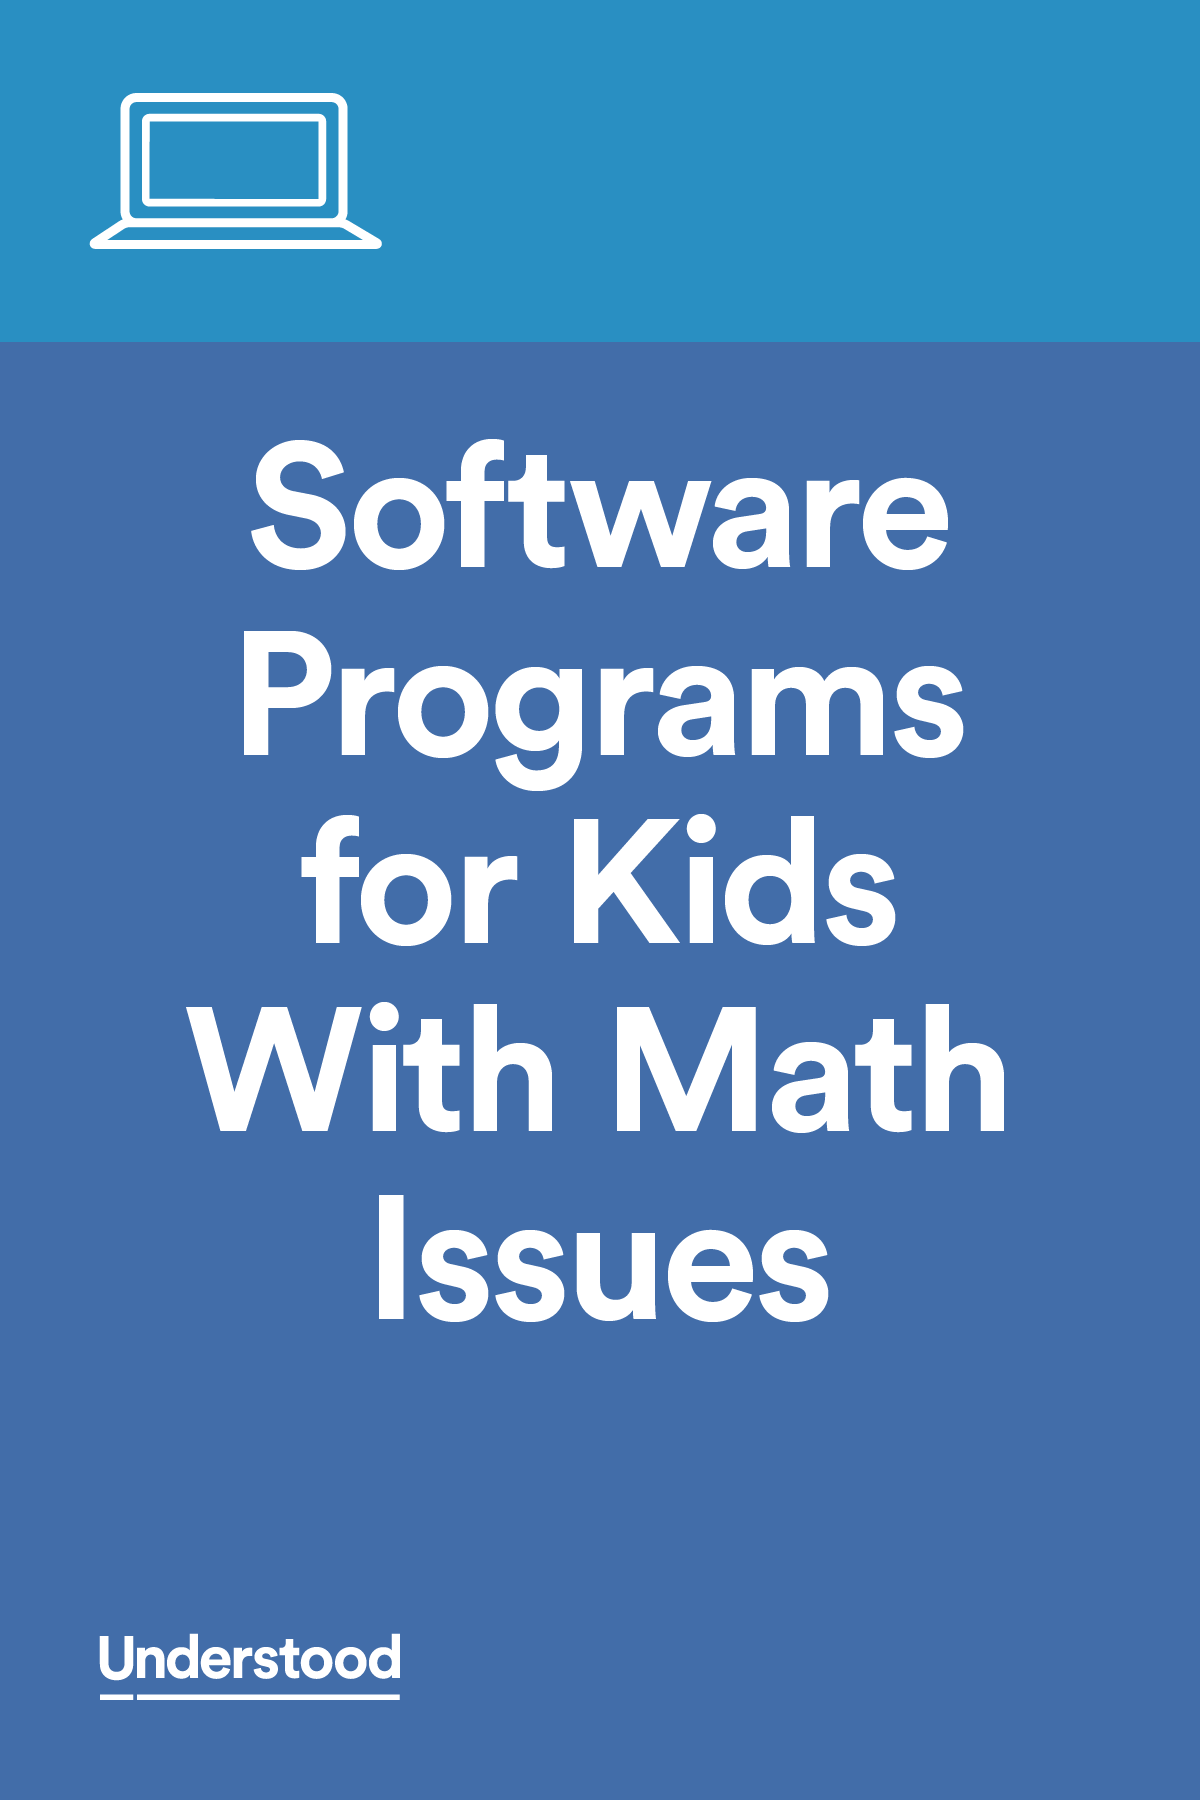 Software Programs for Kids With Math Issues | Dyscalculia and Math ...